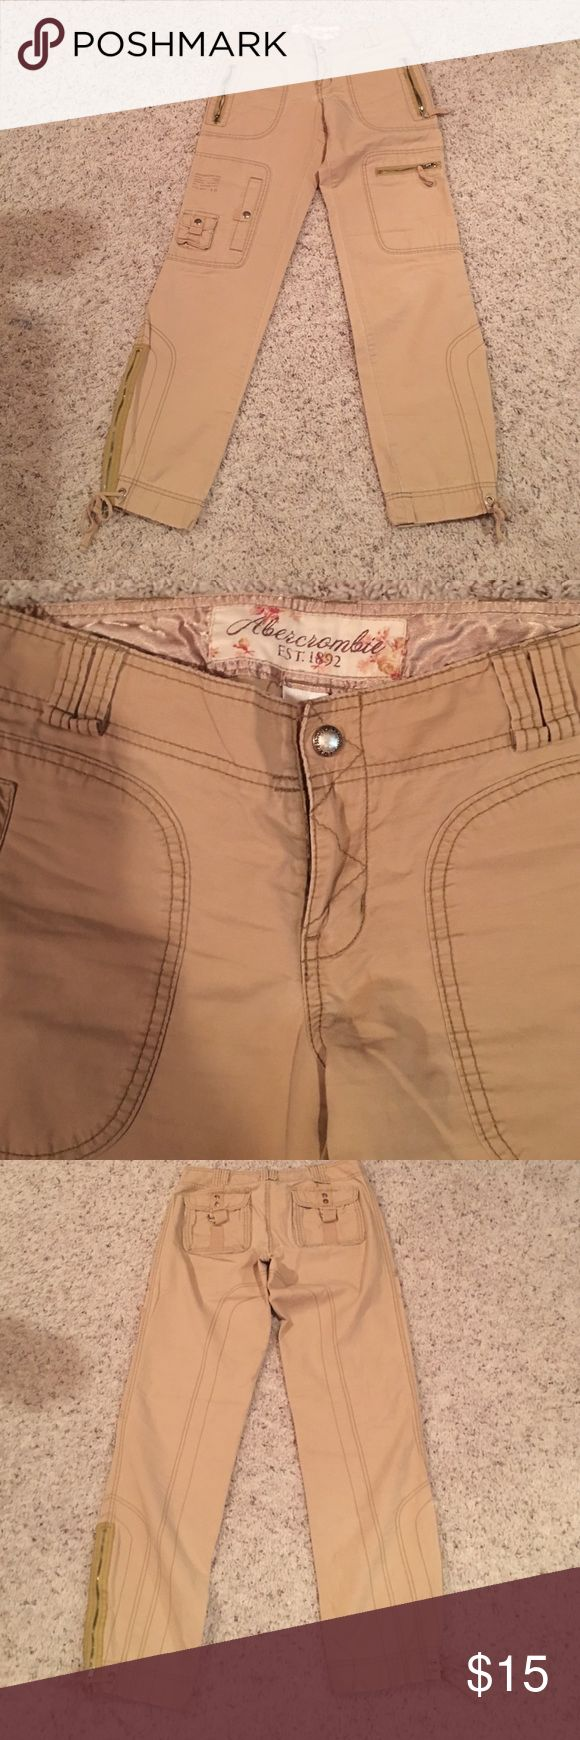 Abercrombie &Fitch Vintage Abercrombie utility pants. Size 2. Excellent condition Abercrombie & Fitch Pants